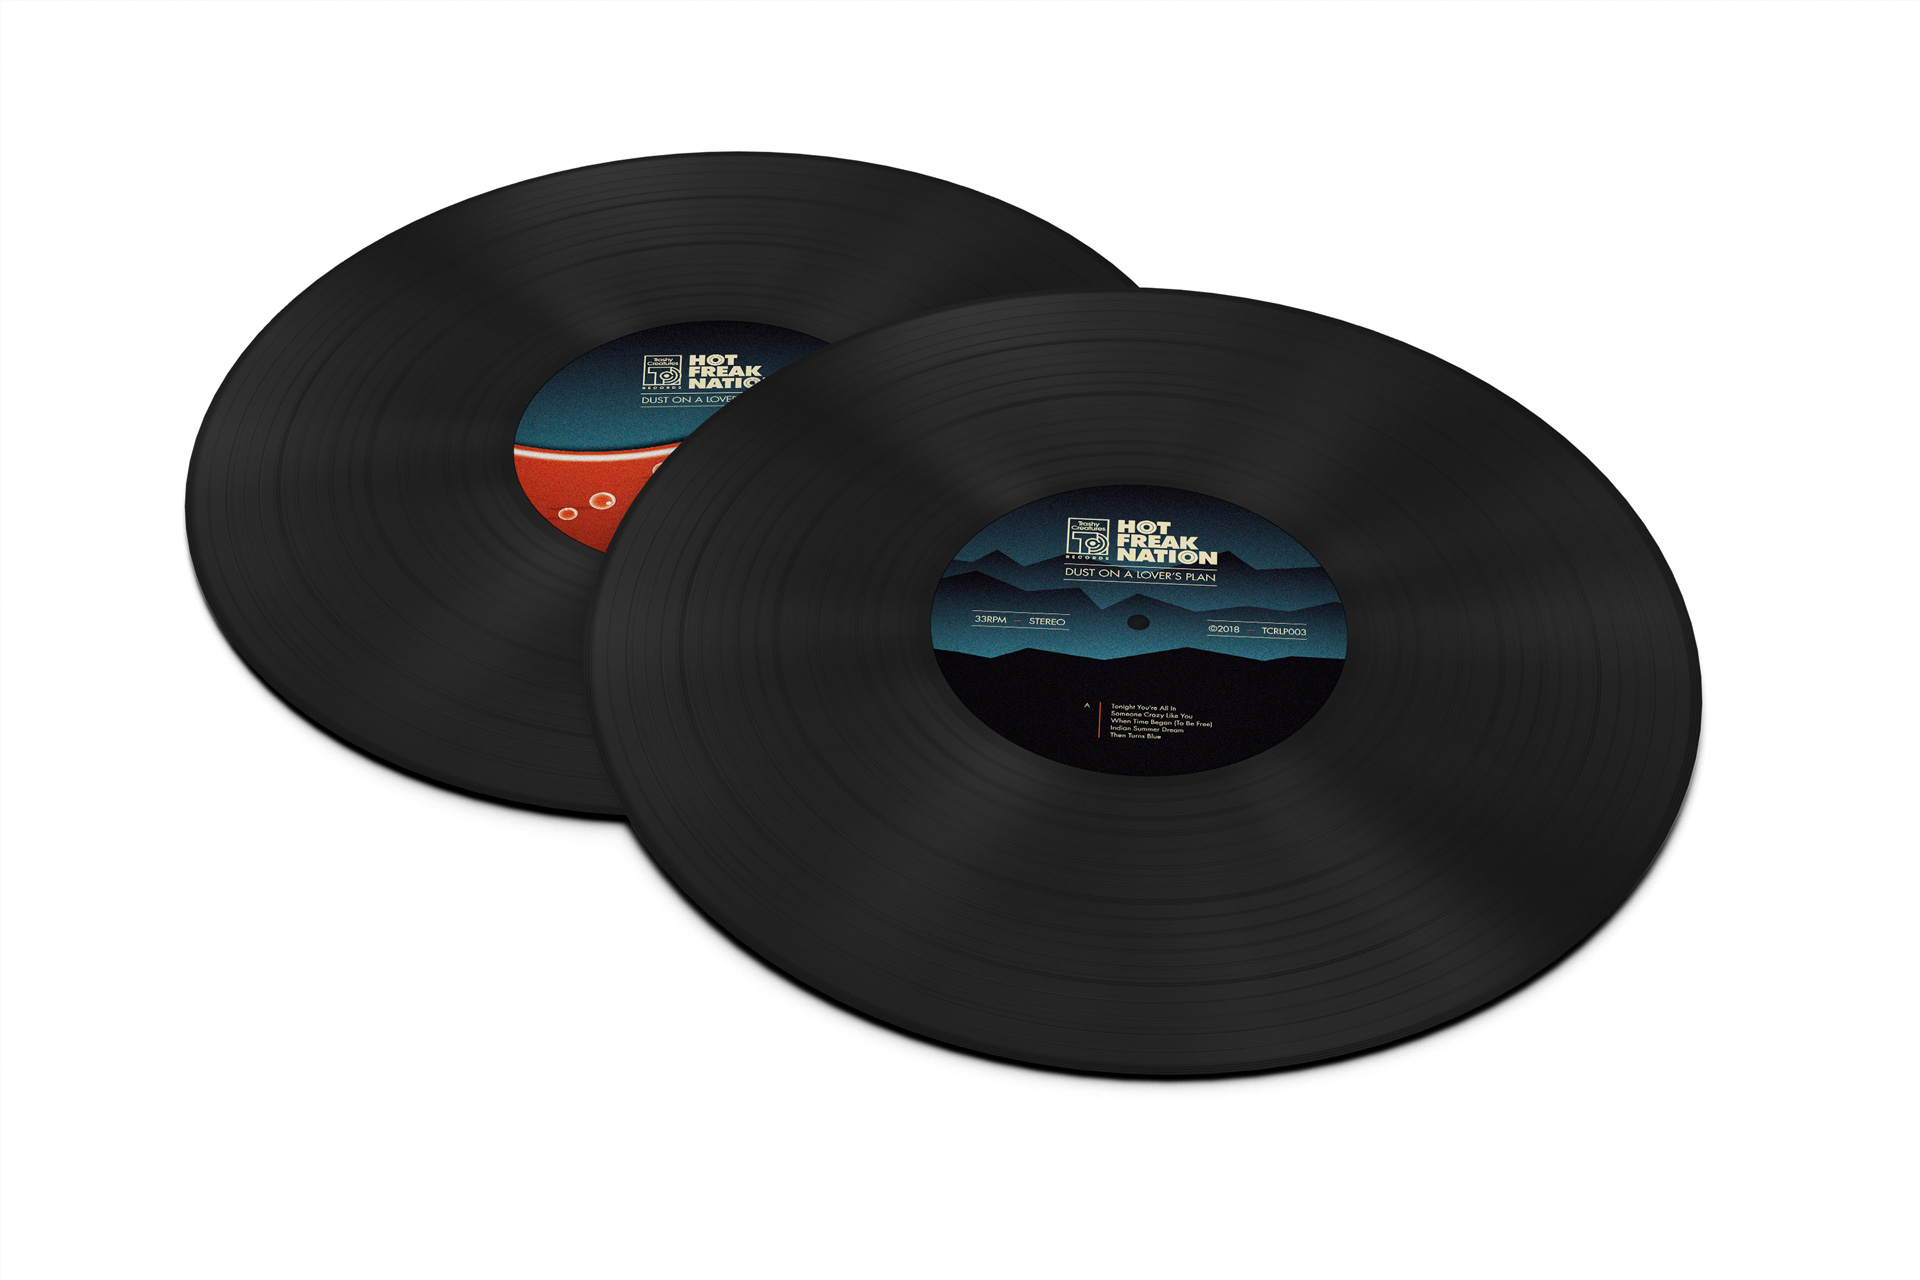 HFN-Dust-Vinyl-Labels-Mockup.jpg